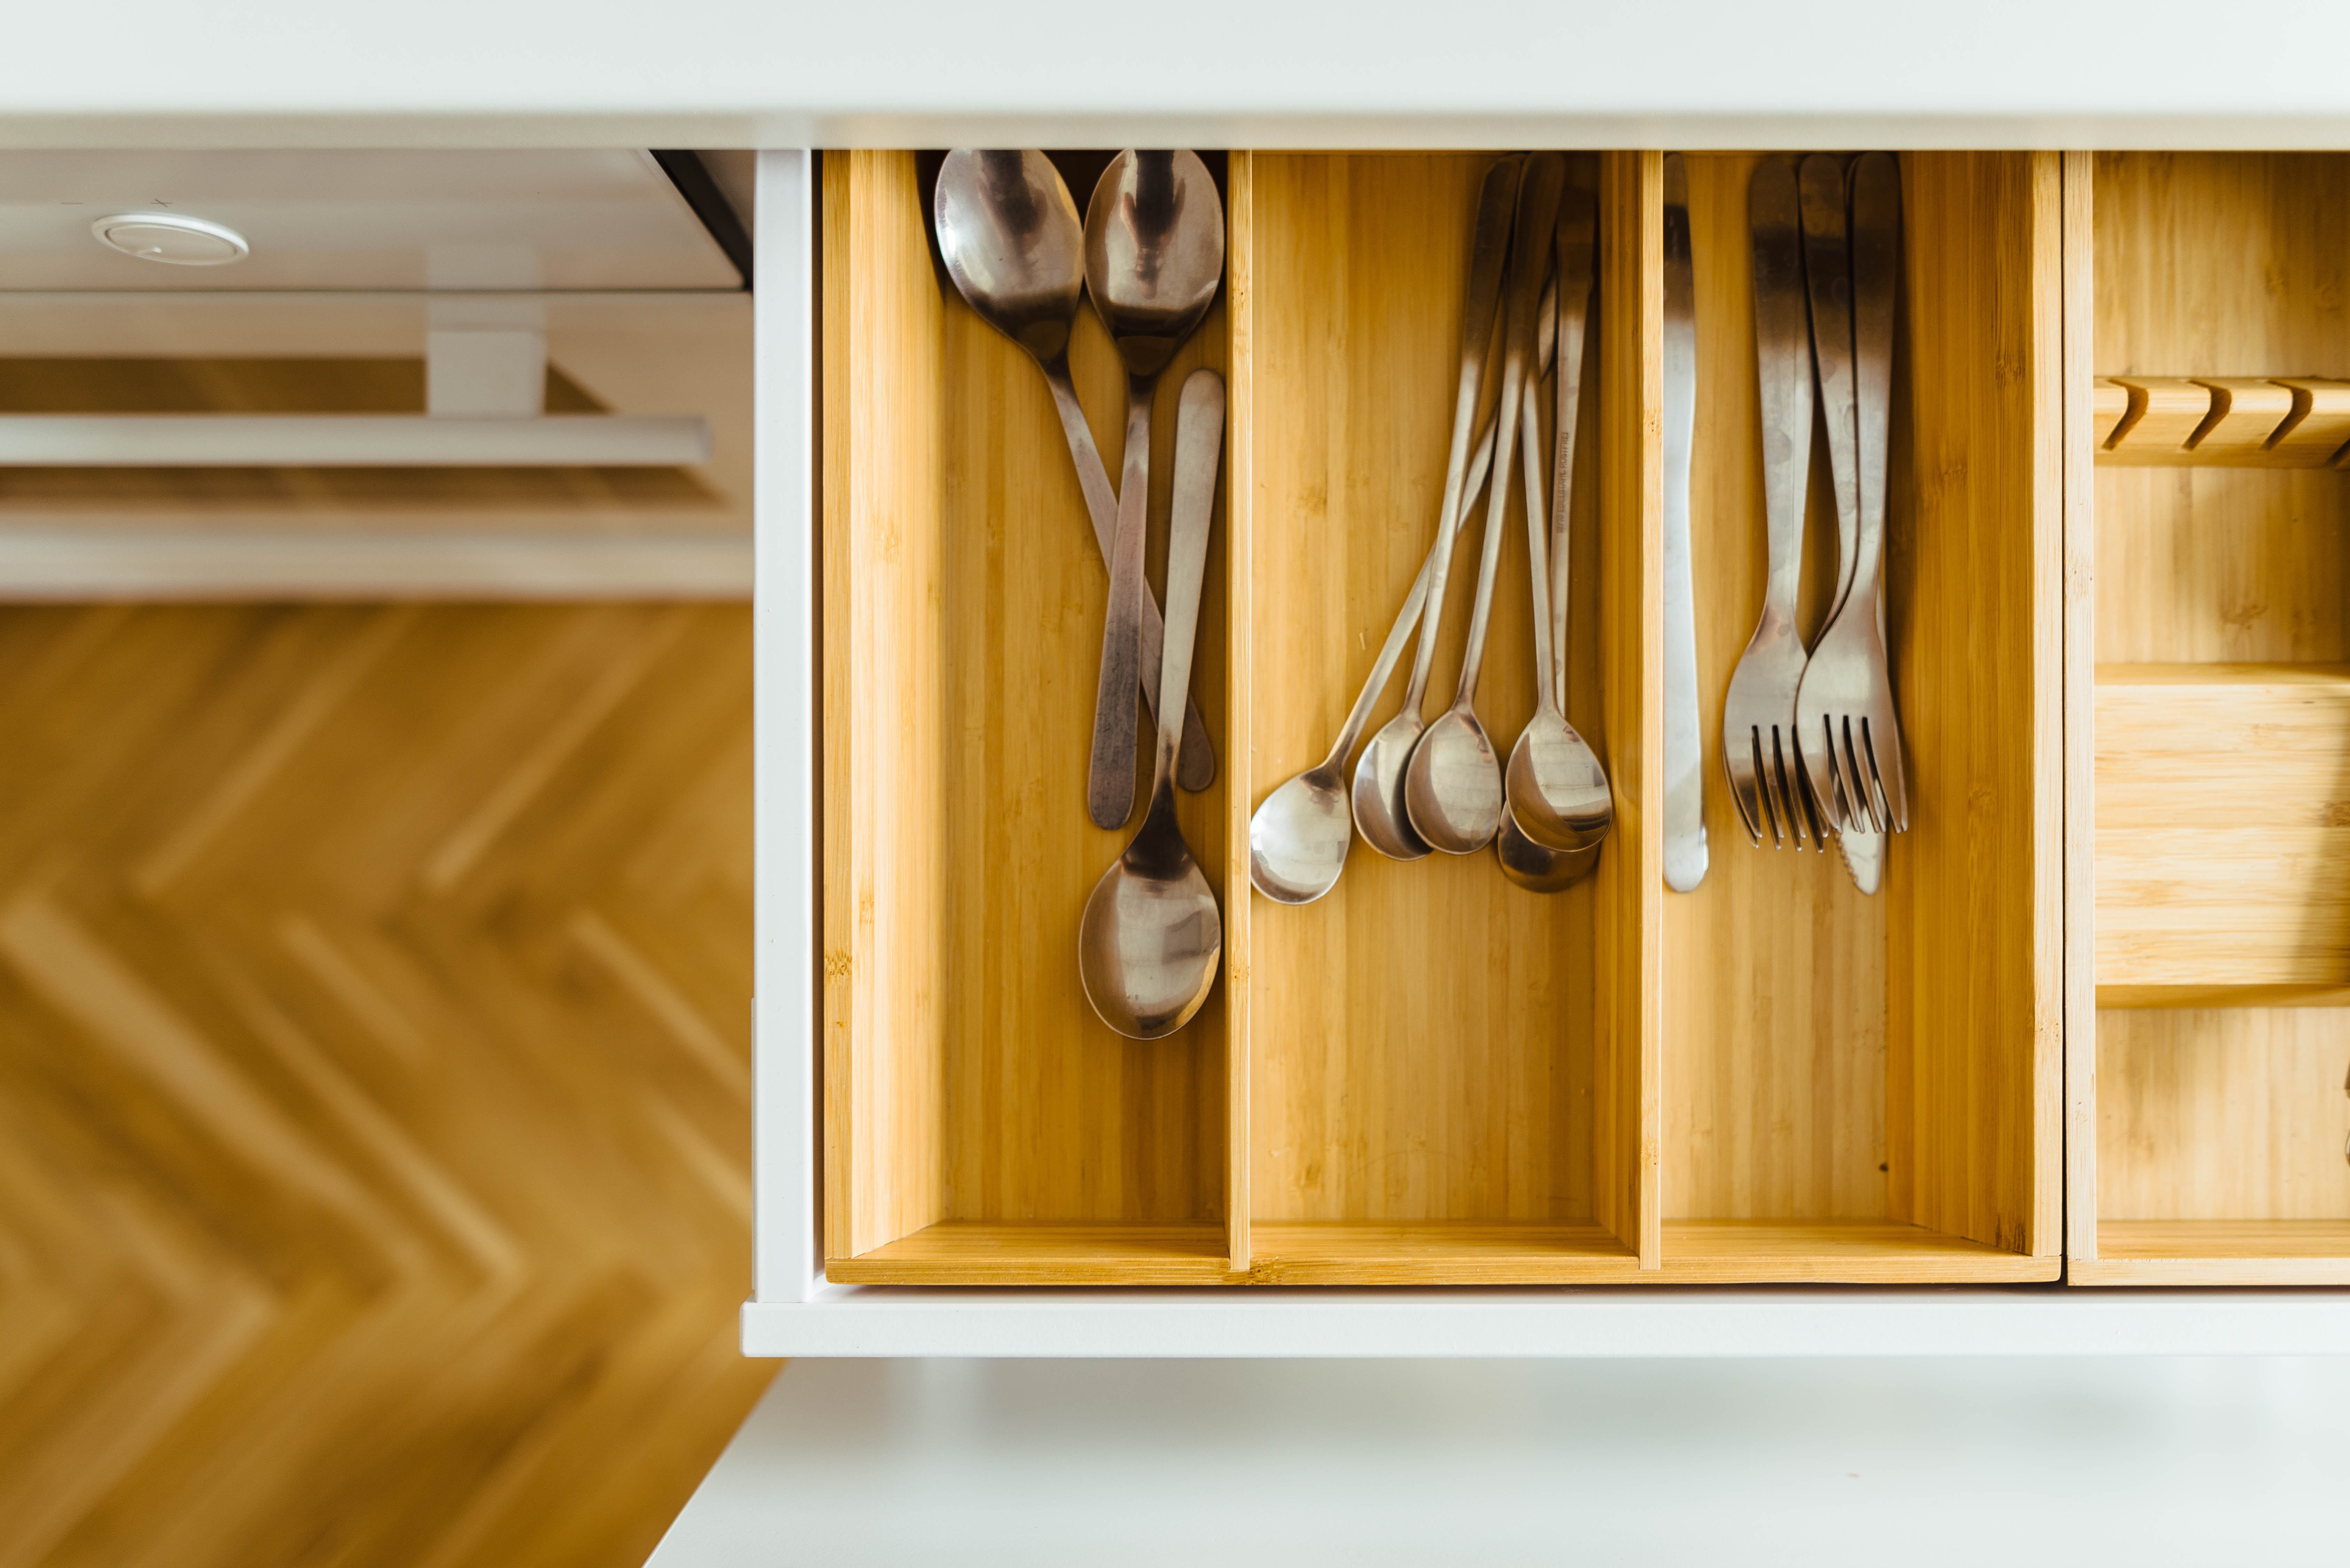 View from above of wooden utensil drawer above wooden floor in kitchen with white cabinets